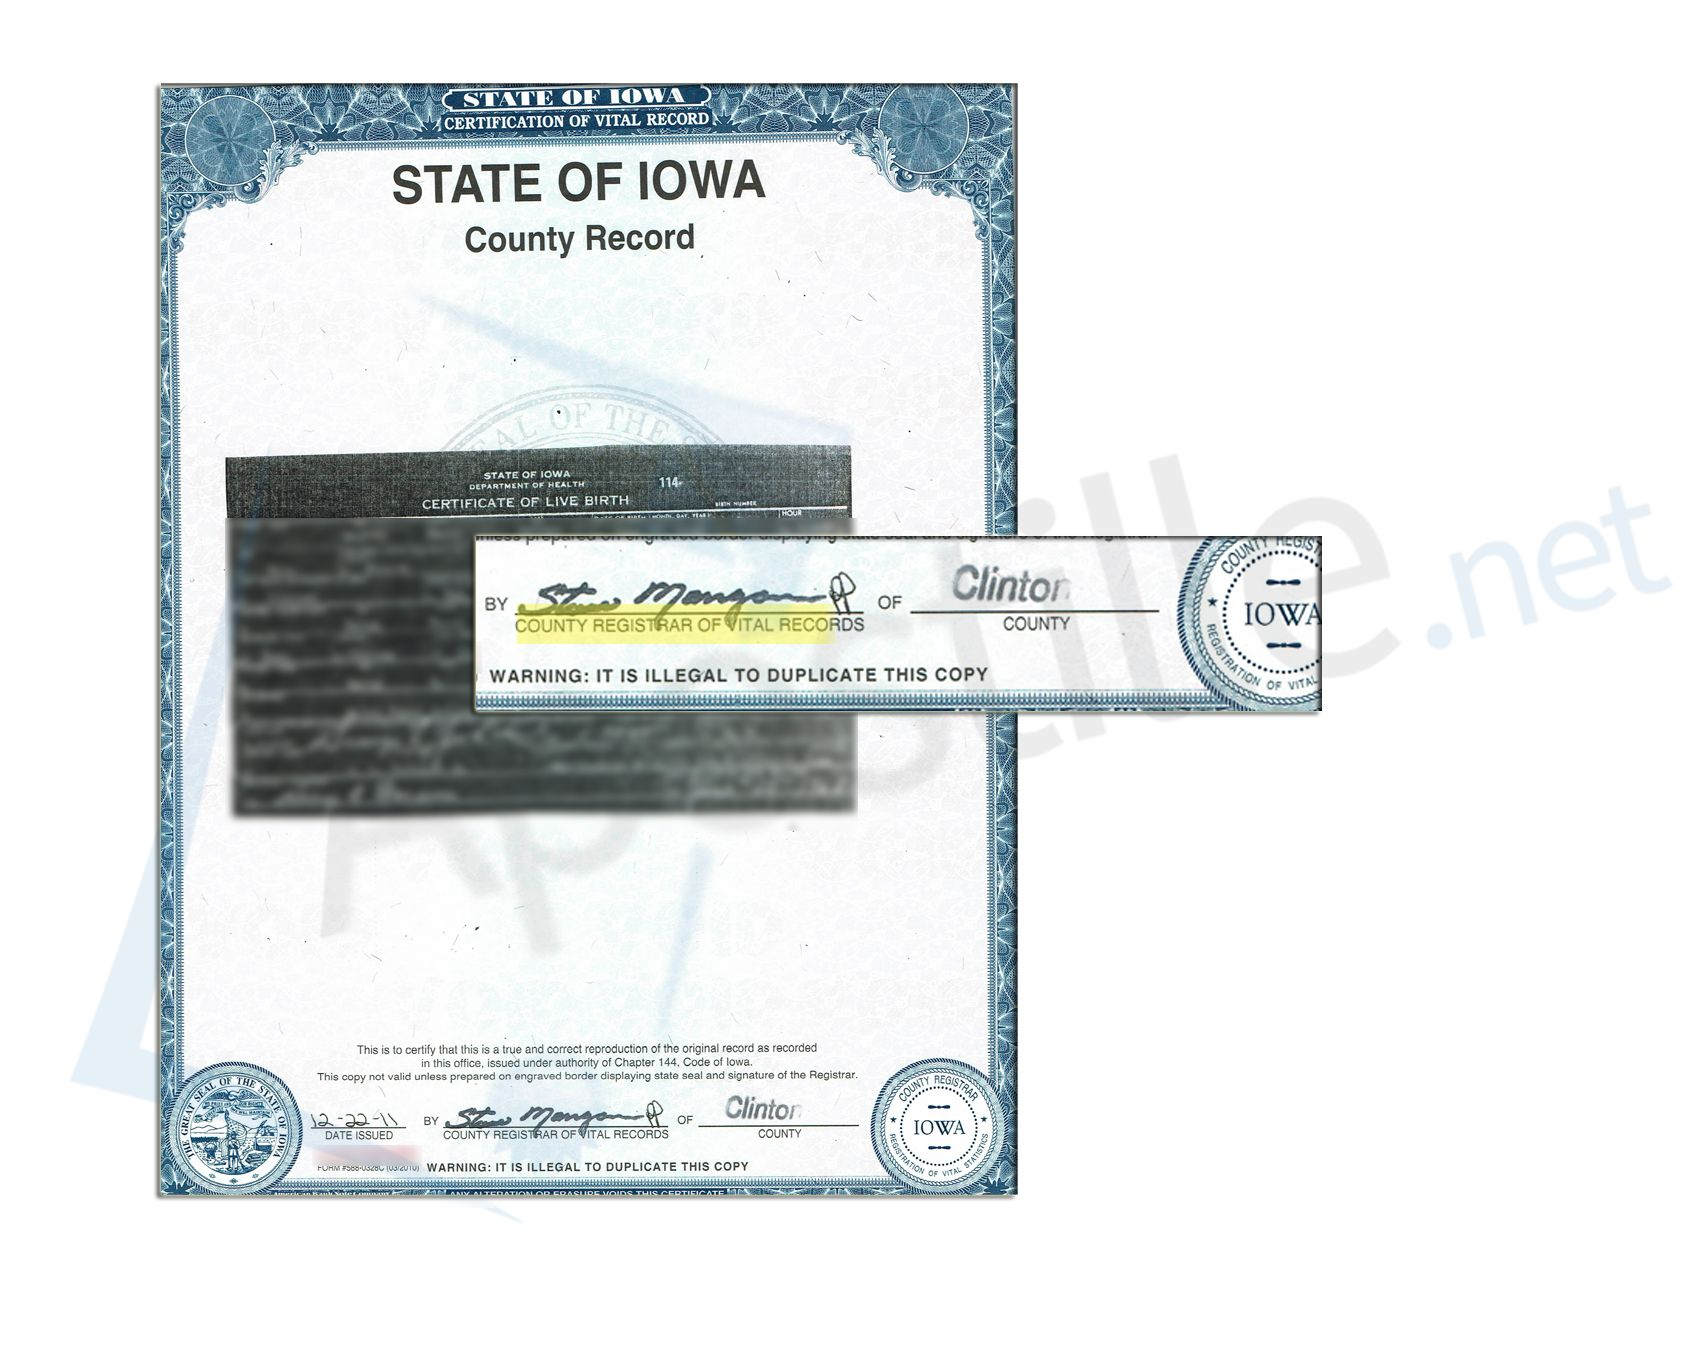 Iowa Birth Certificate Signed By The Clinton County Registrar